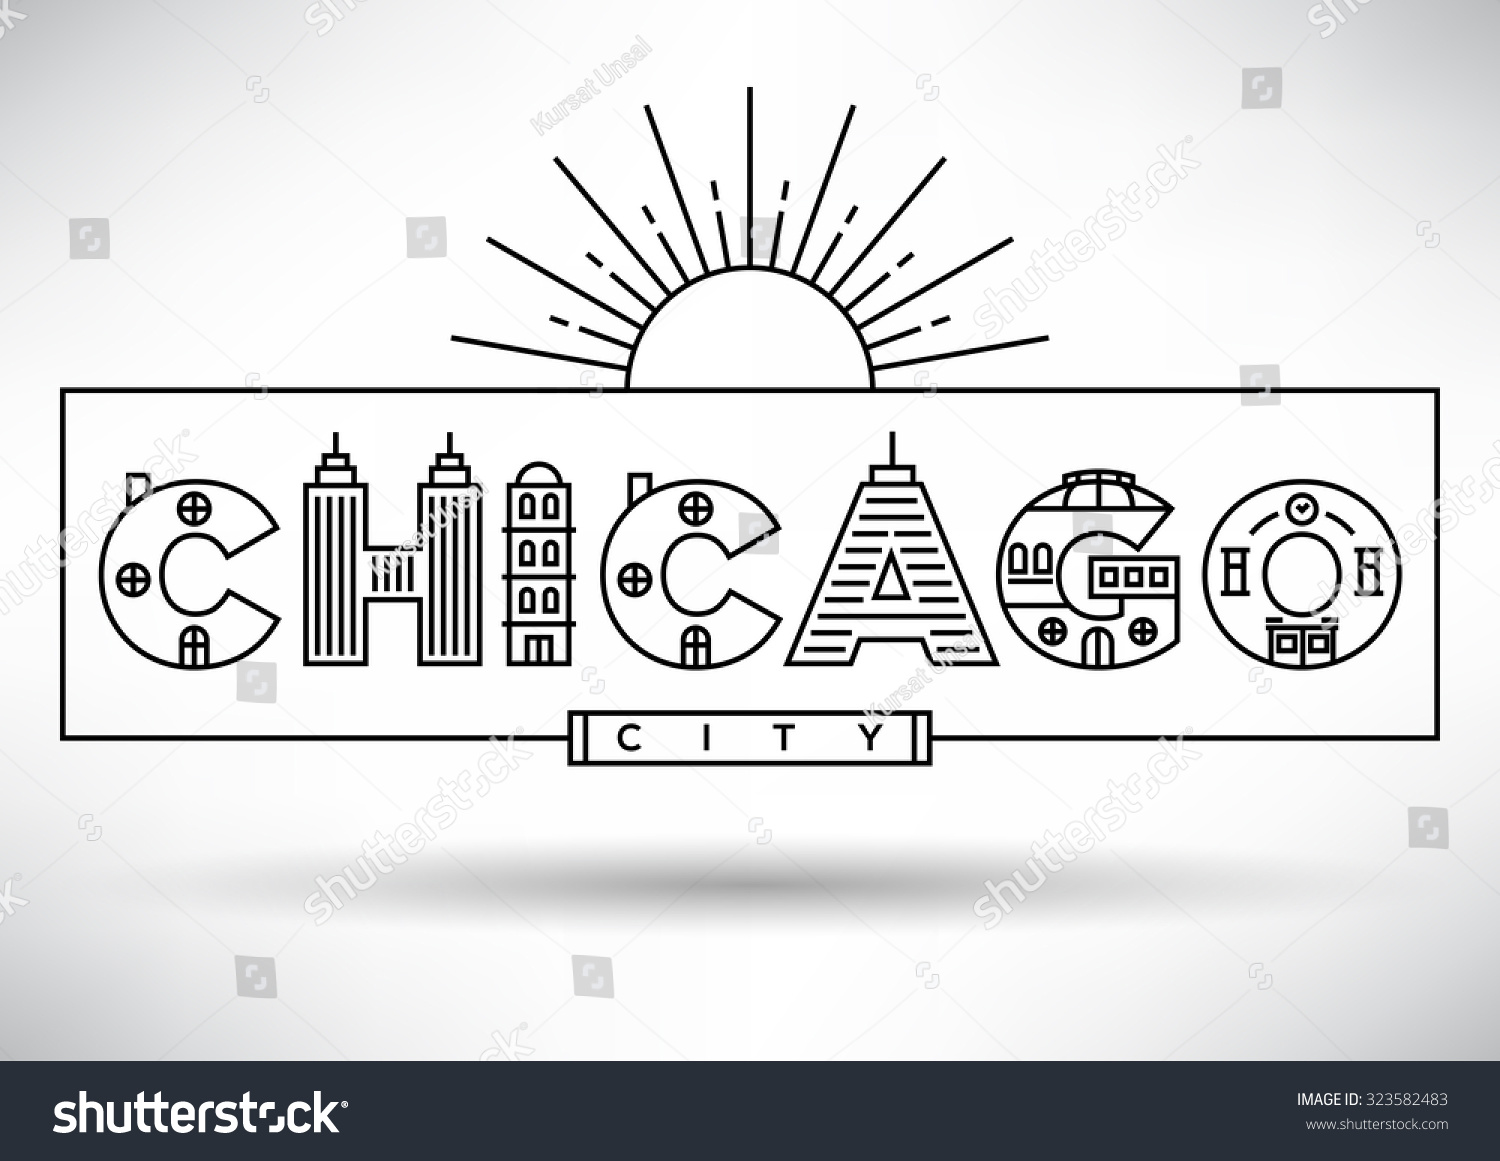 chicago city typography design with building letters